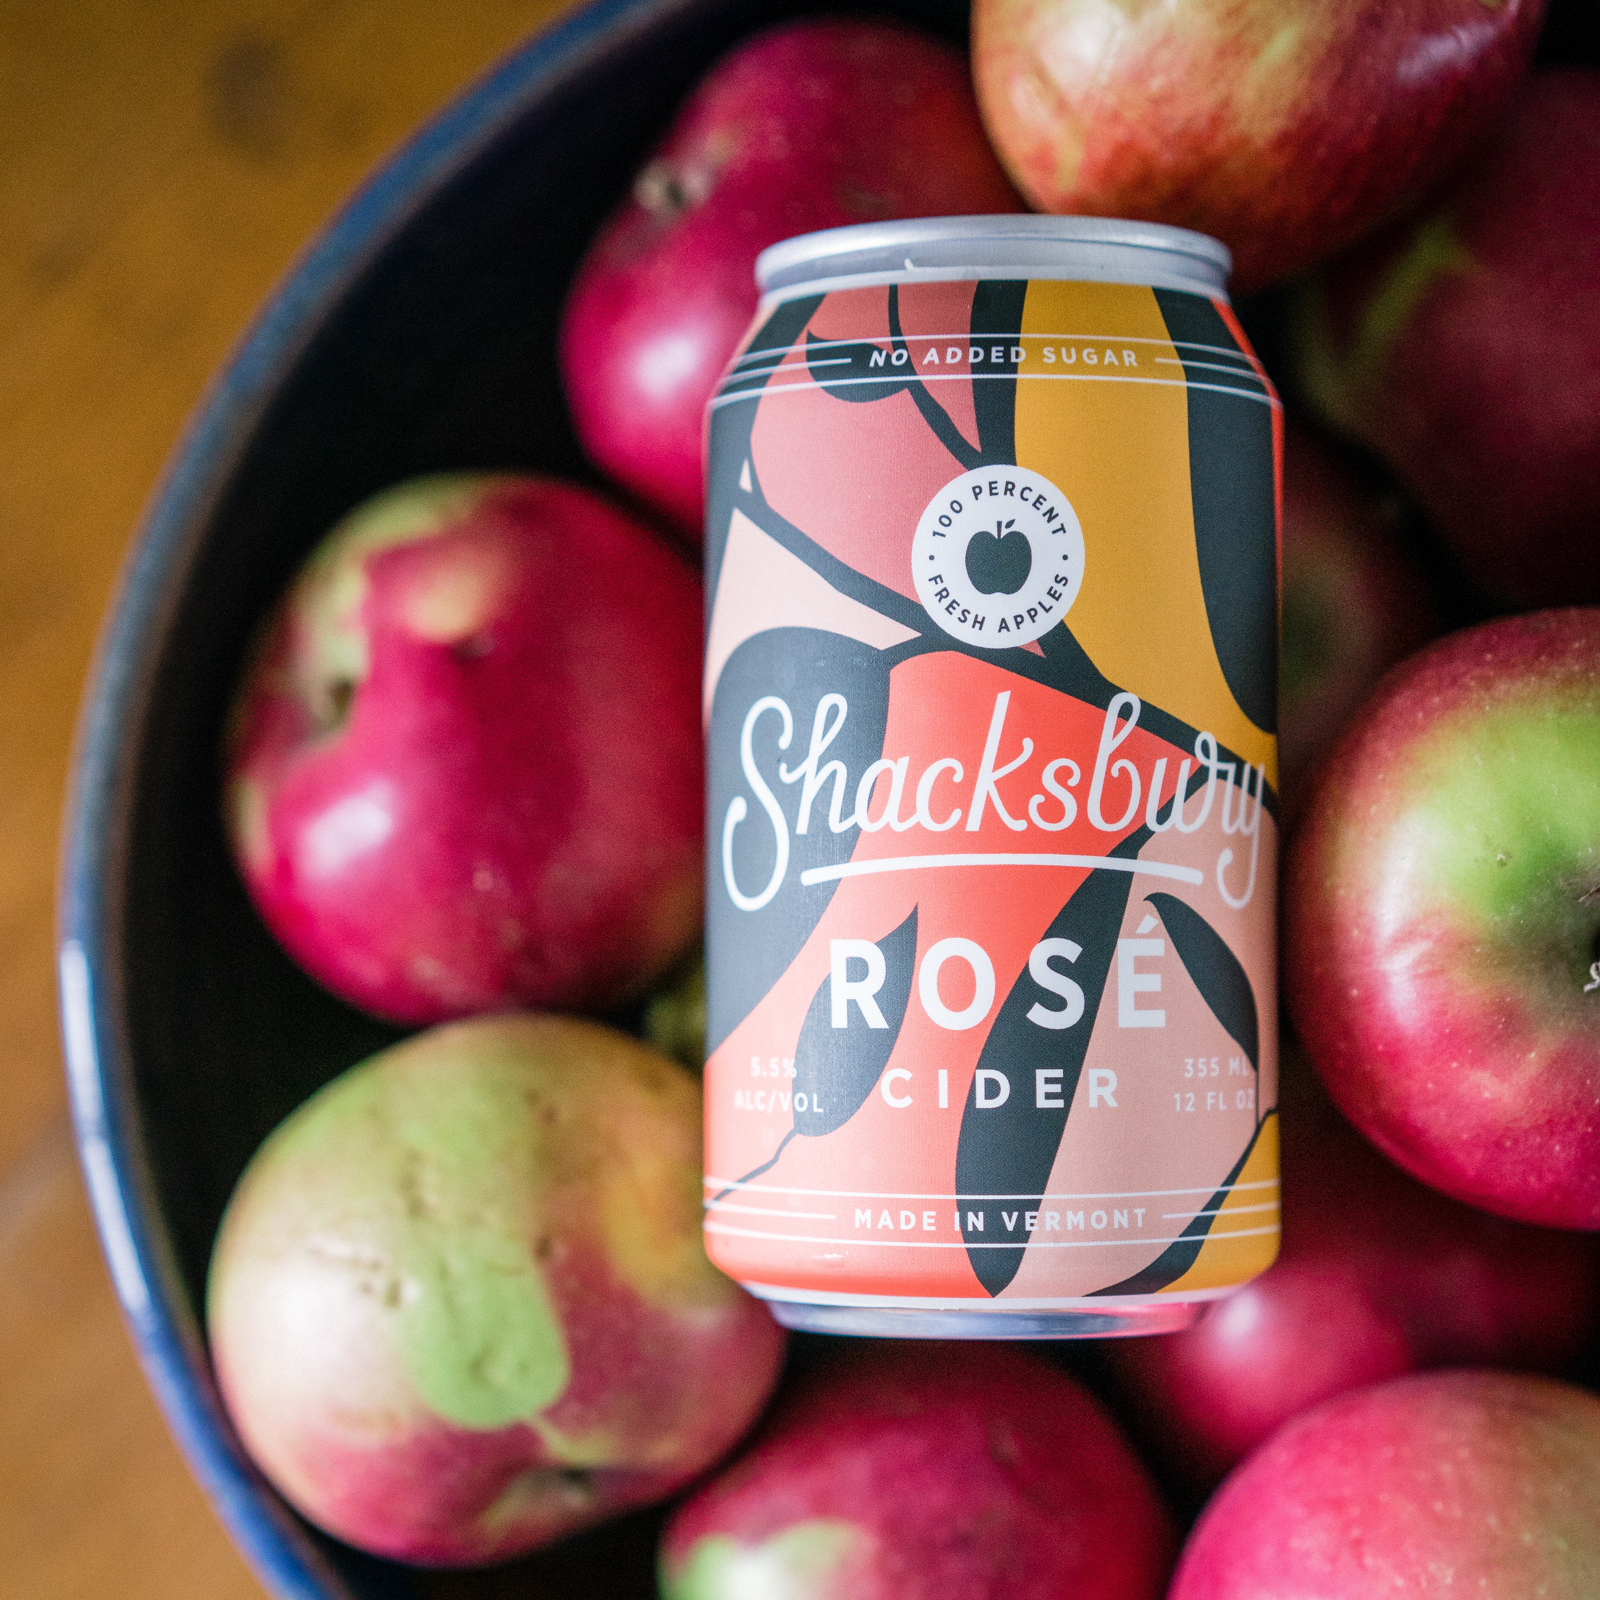 Shacksbury Rose Cider